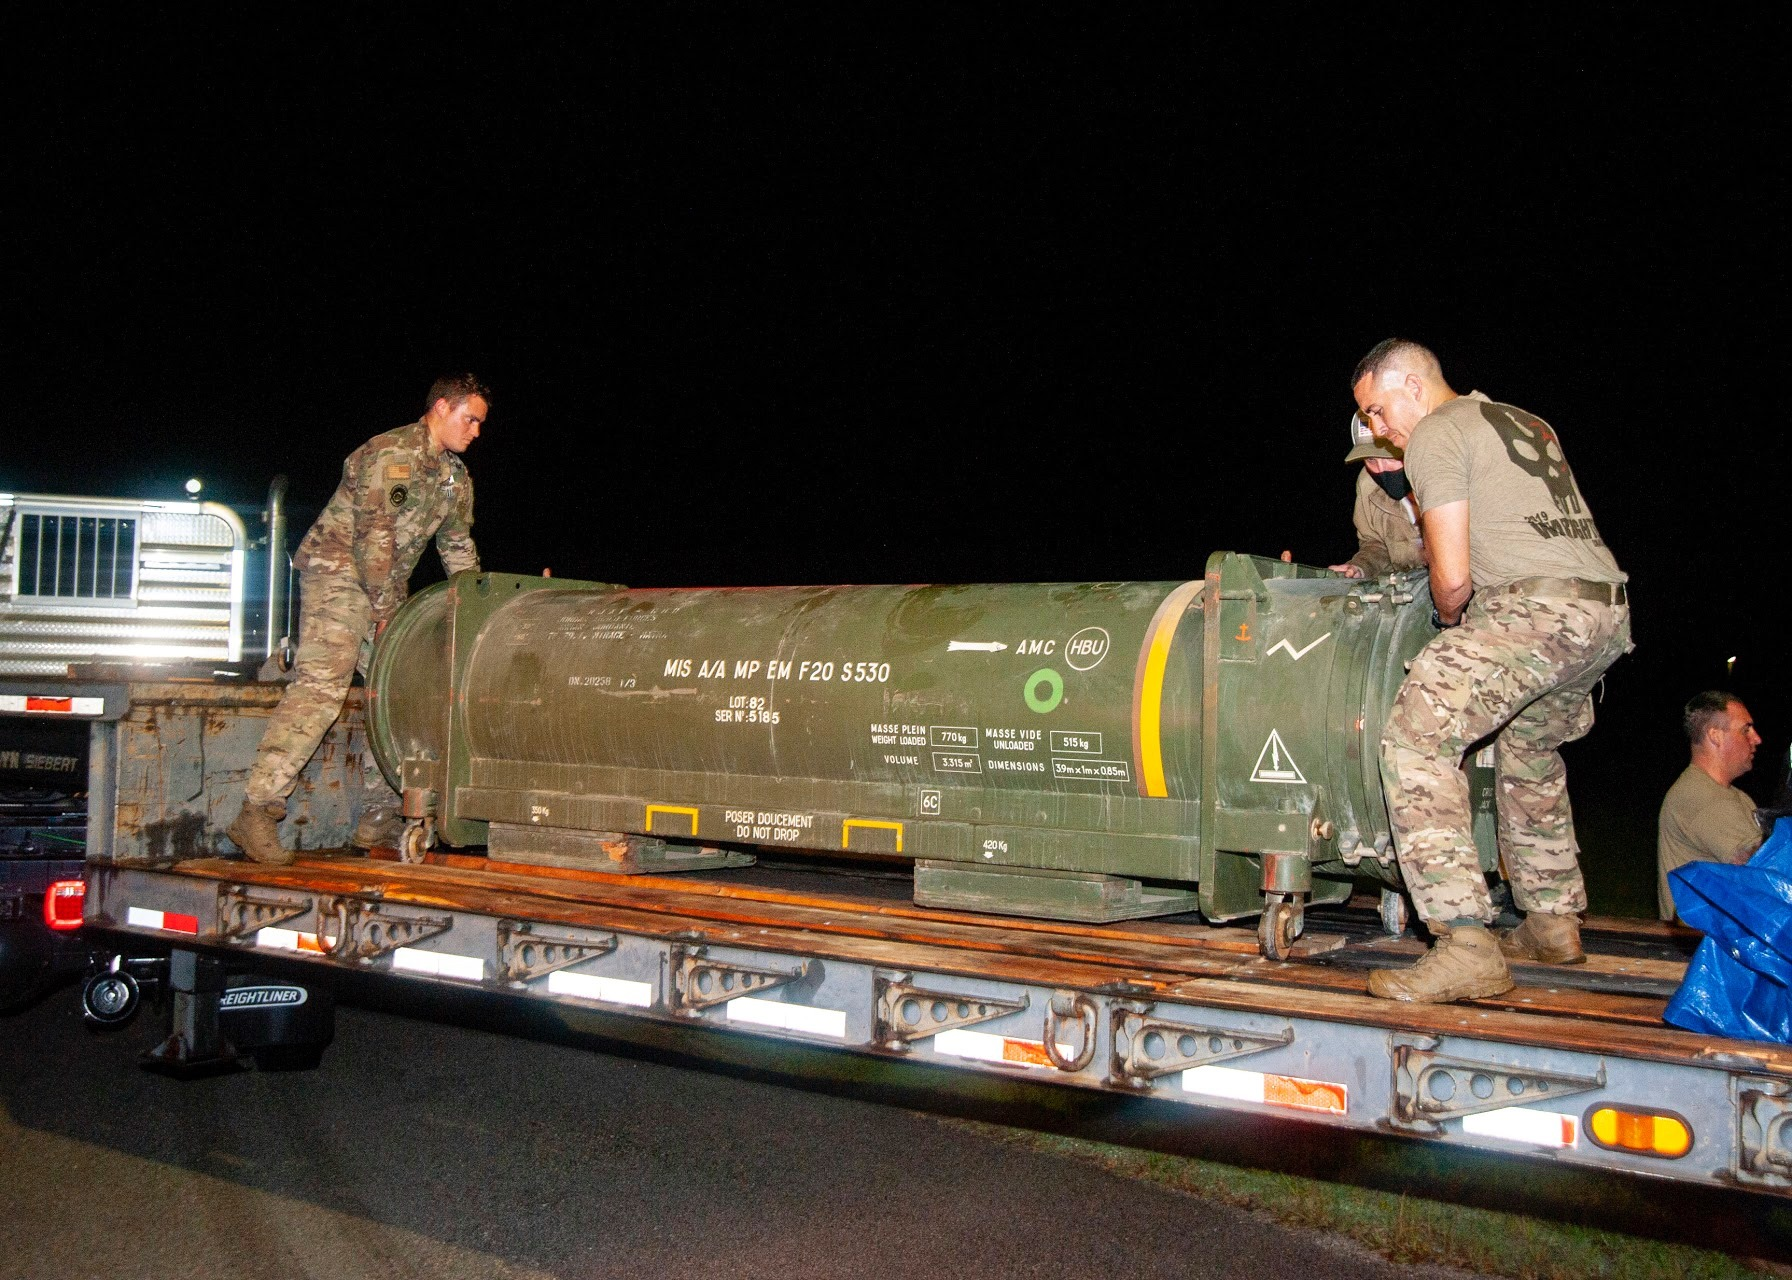 Pics: FL airport discovered live missile, evacuated